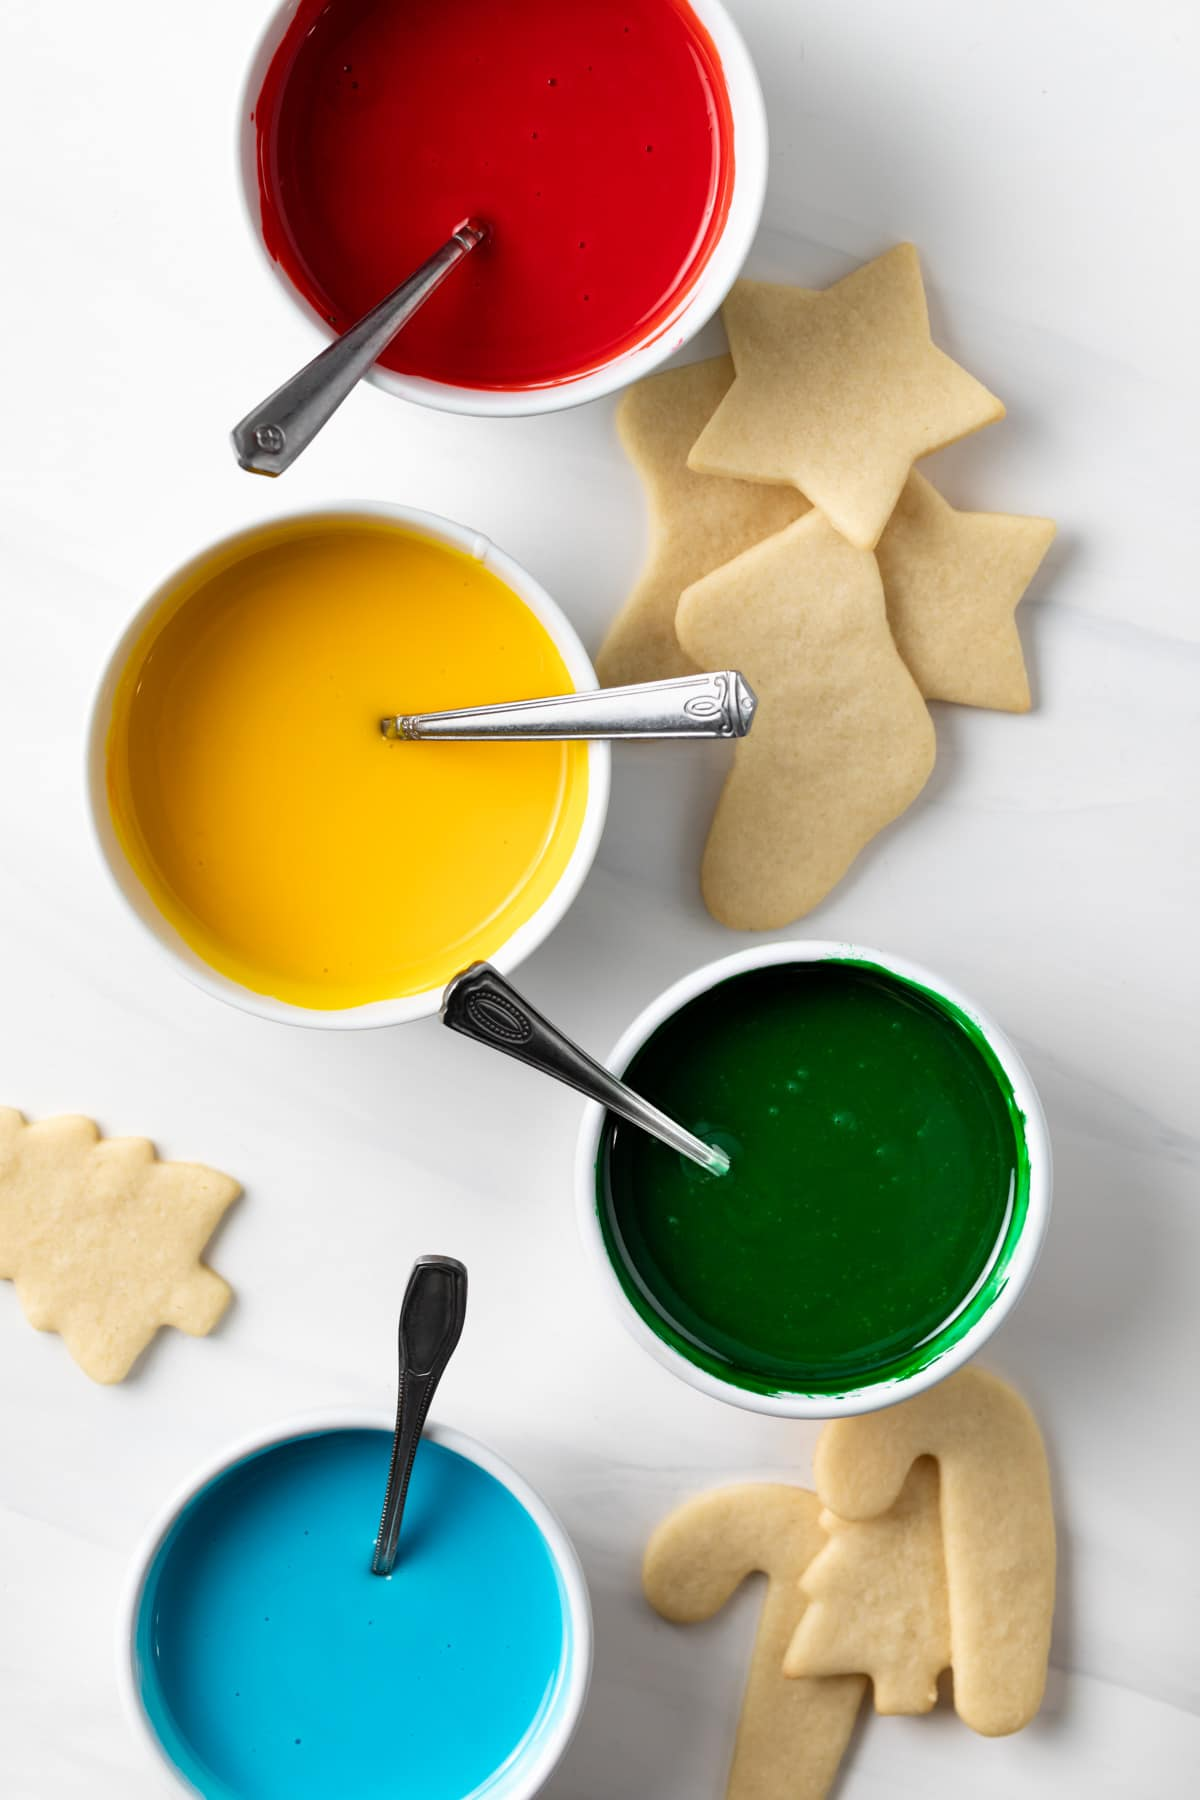 bowls of red, yellow, green, and blue icing with sugar cookies